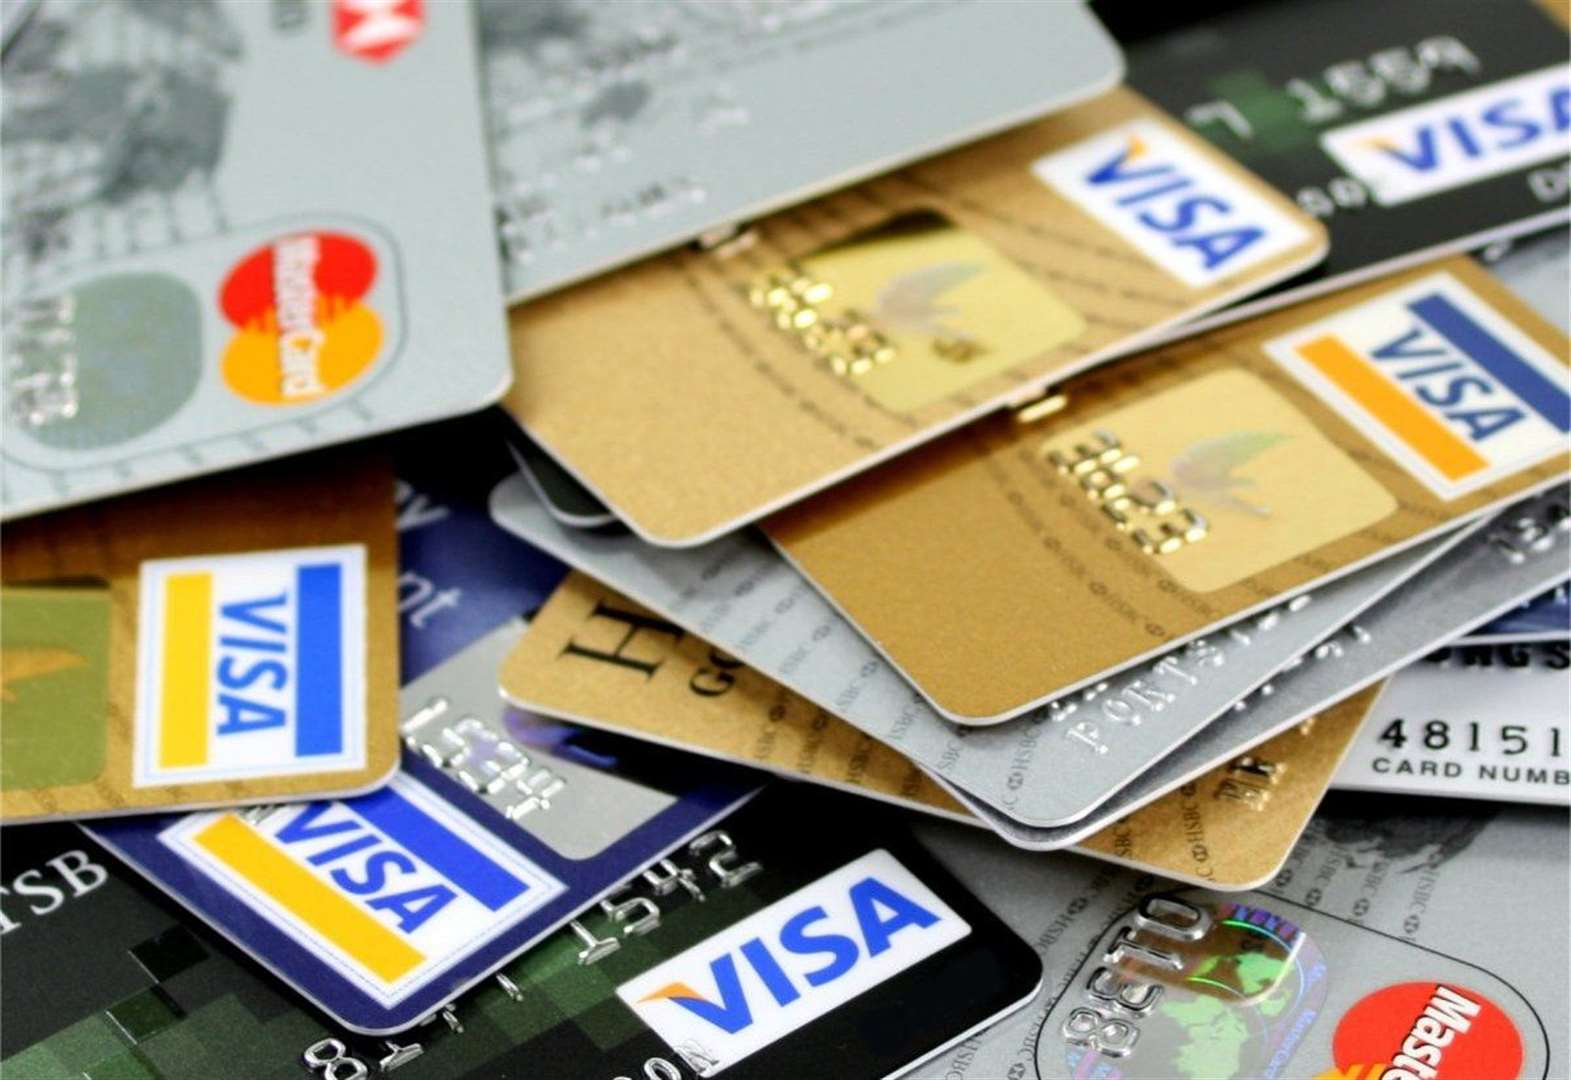 Ban on using credit cards for gambling